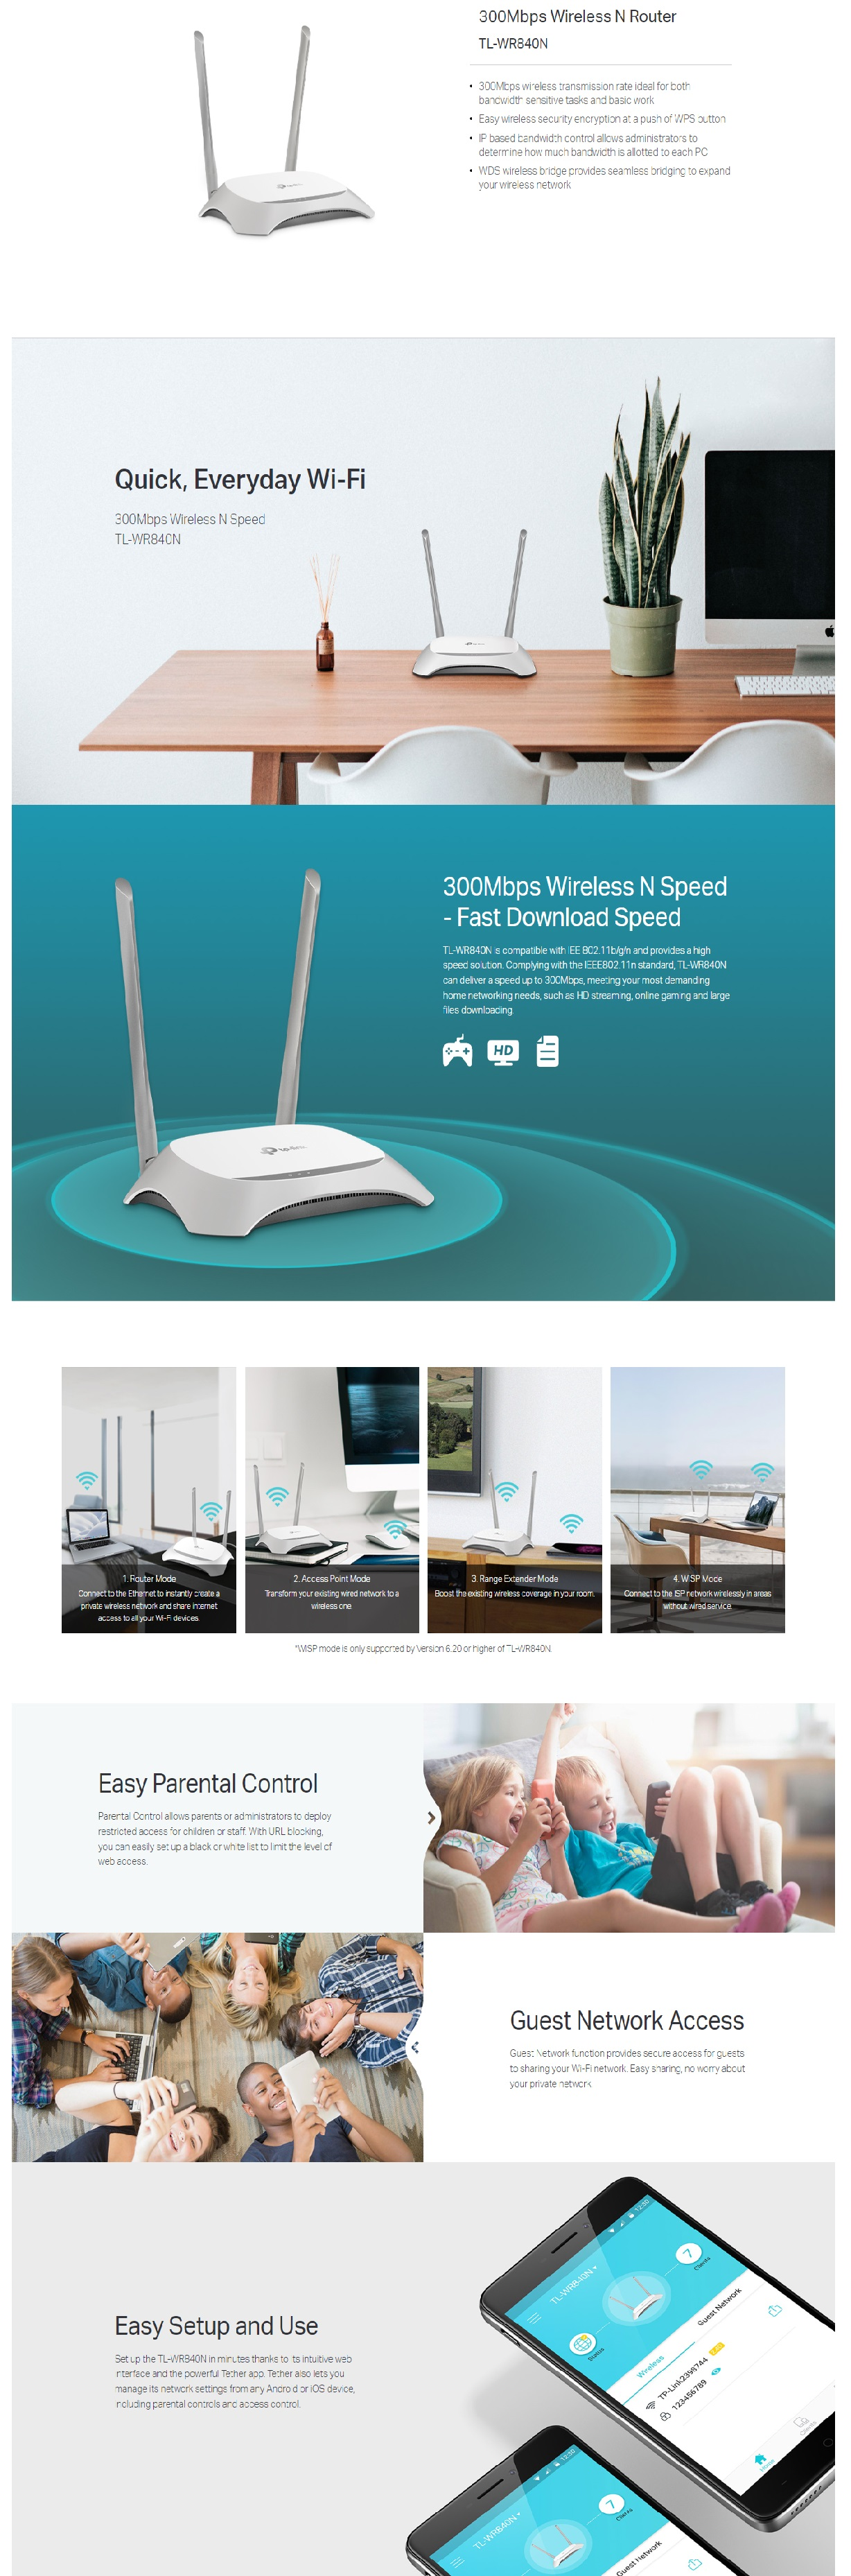 Tp-Link-300mbps-Wireless-n-router-TL-WR840N